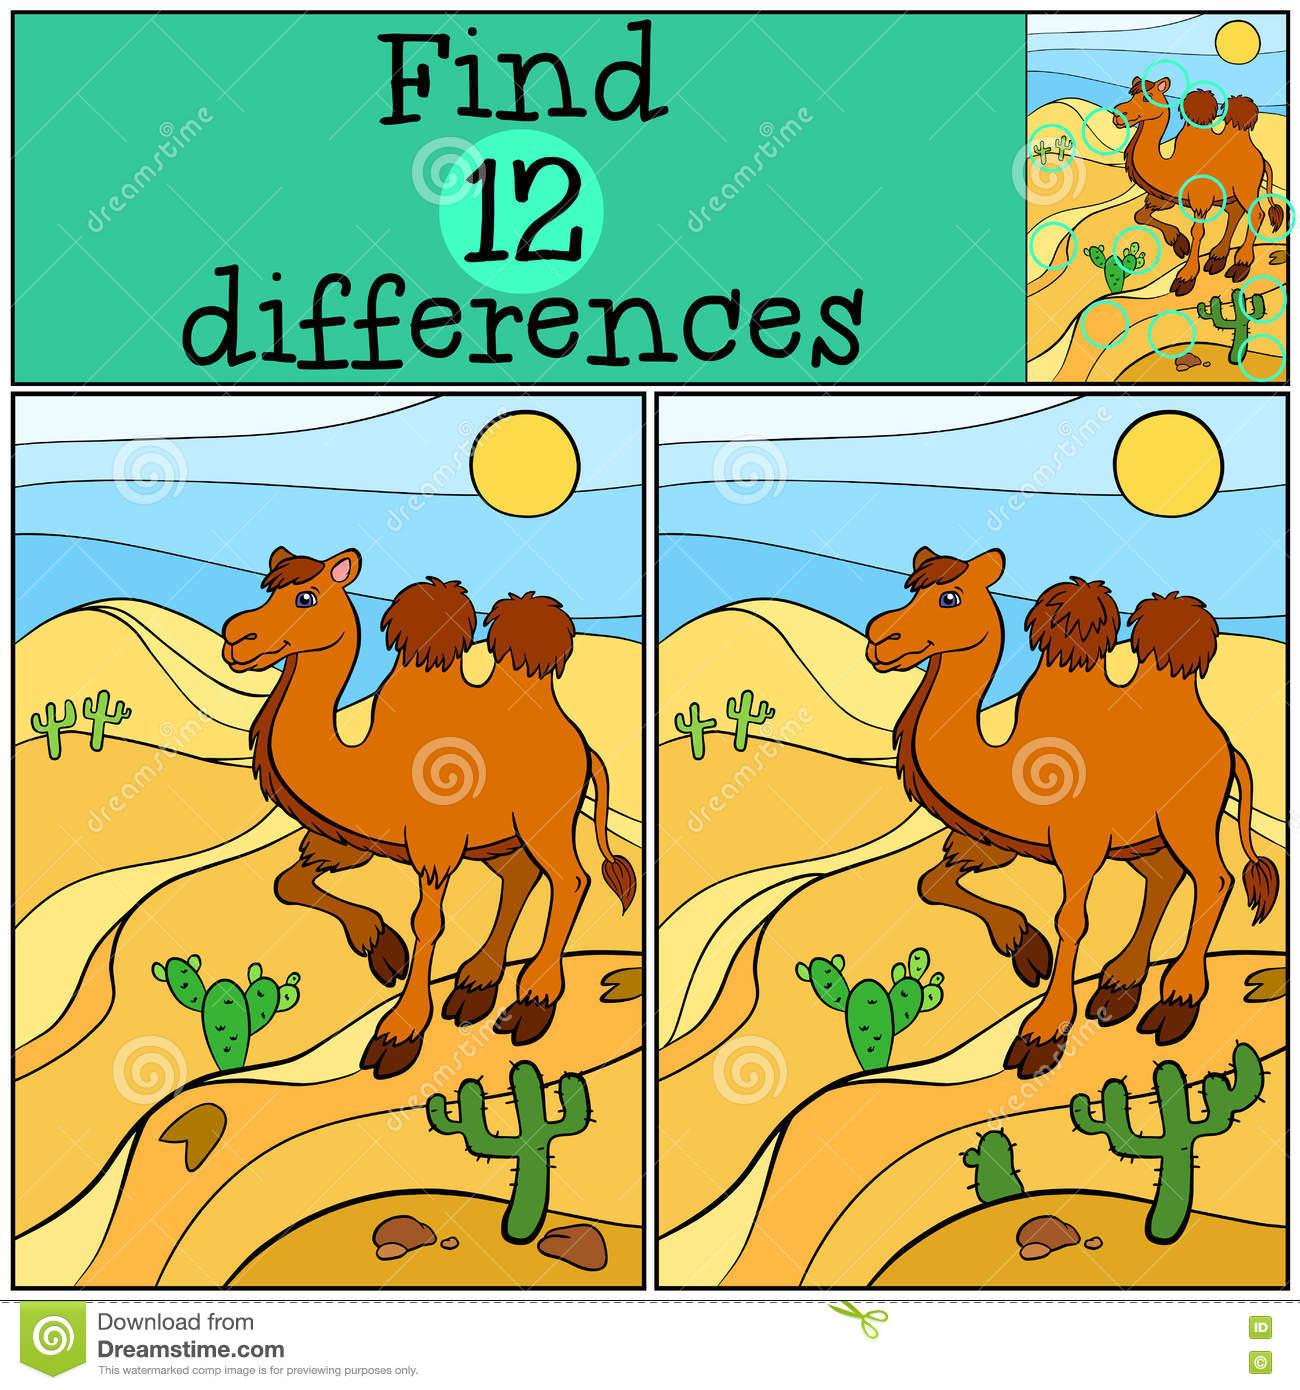 Children games: Find differences. Cute camel.